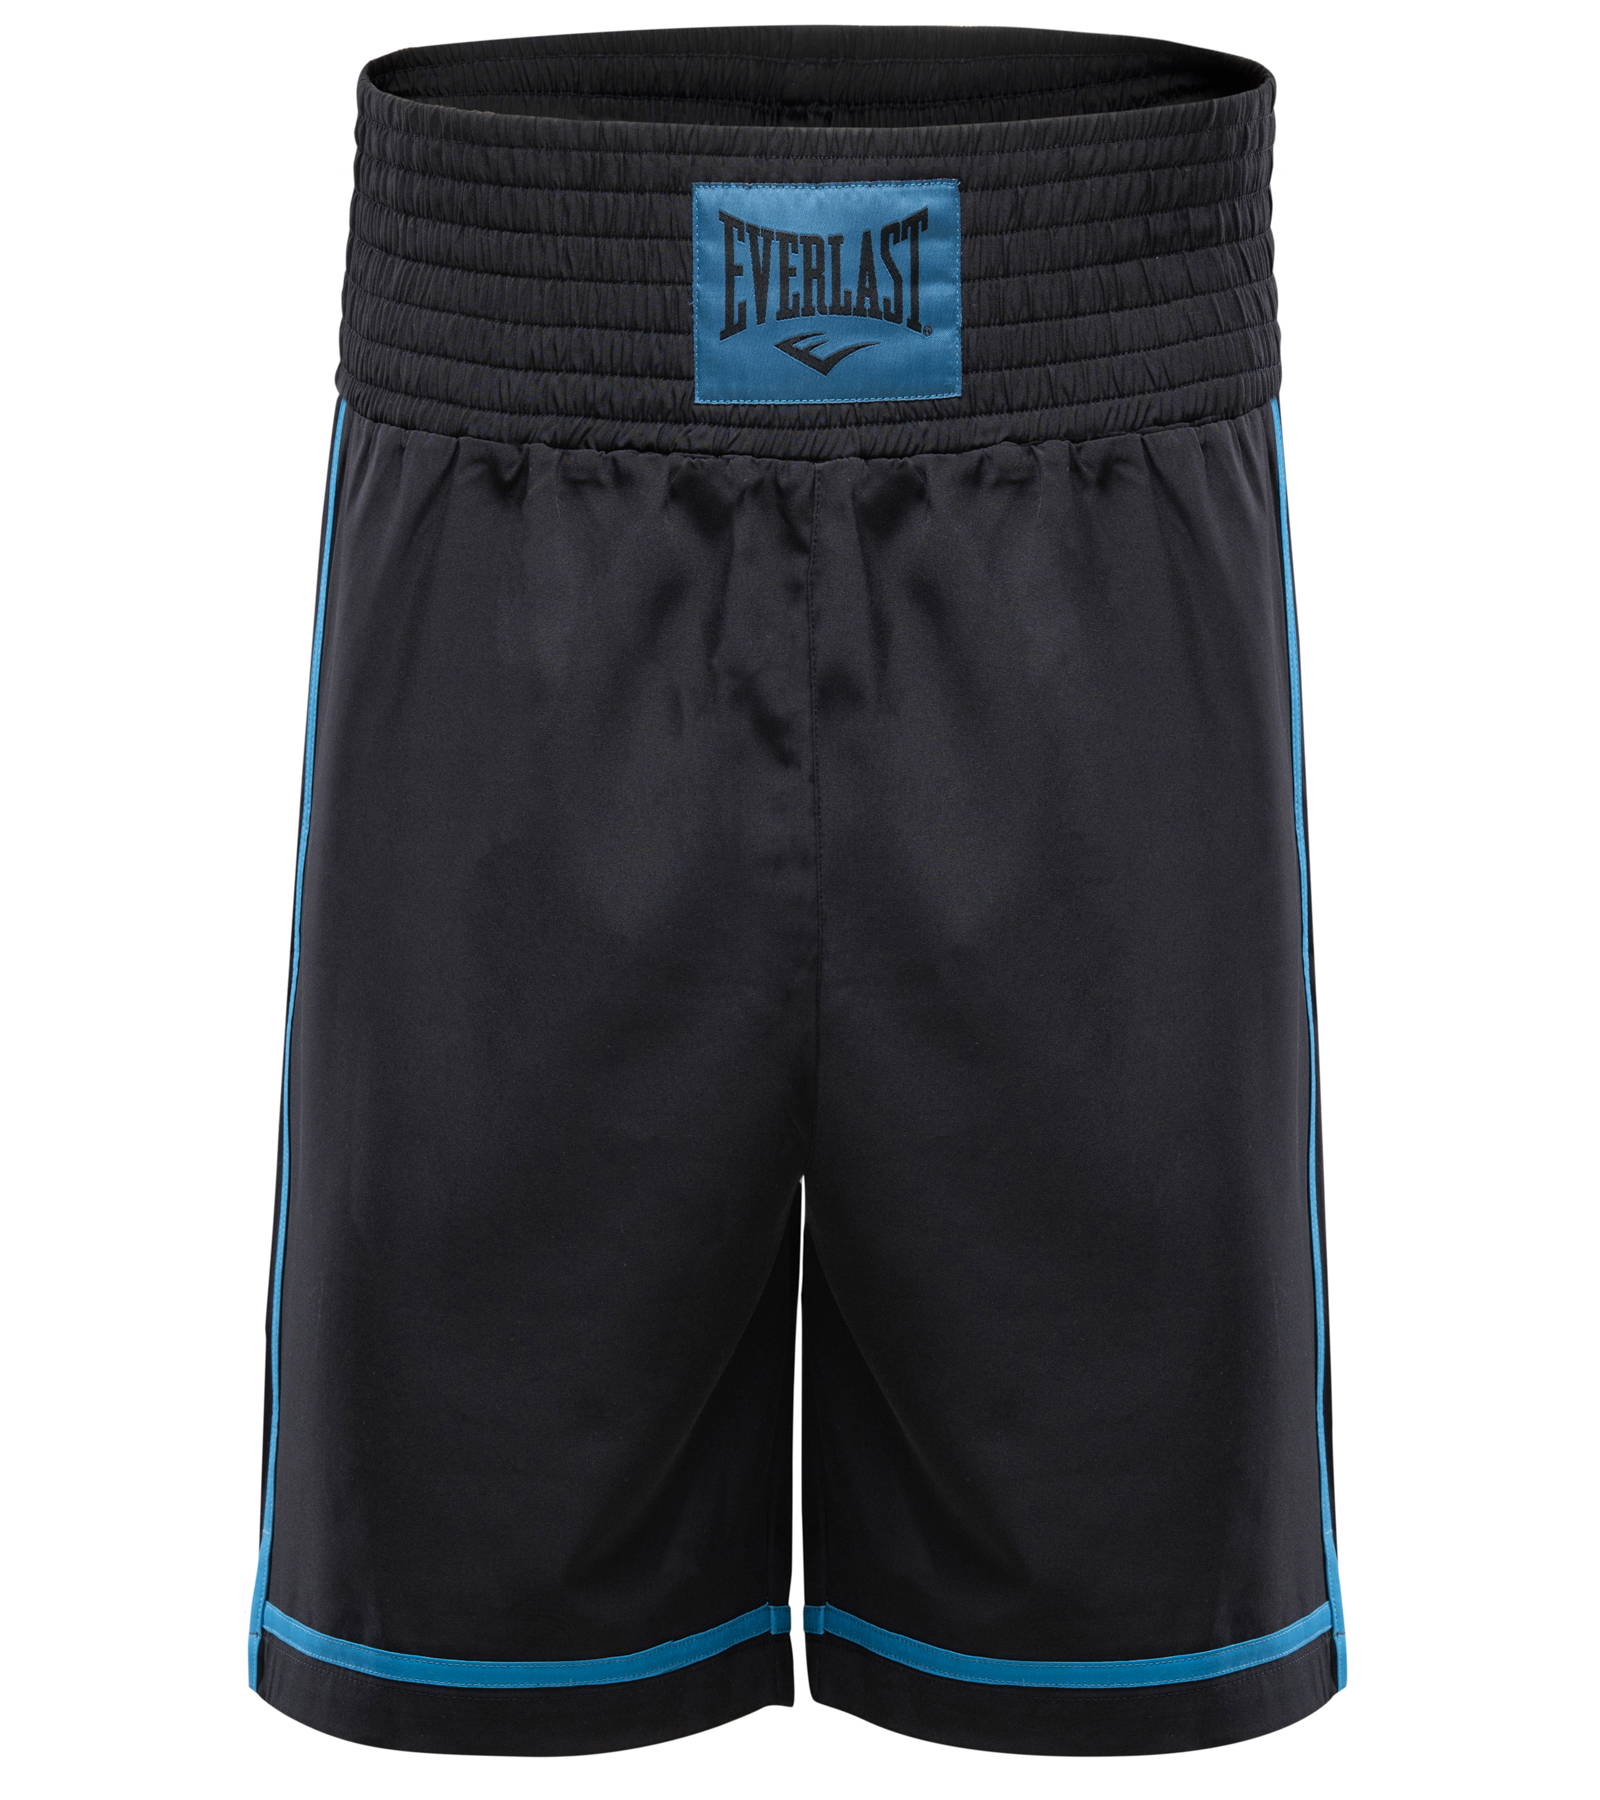 Short de boxe Everlast Cross Noir et Bleu